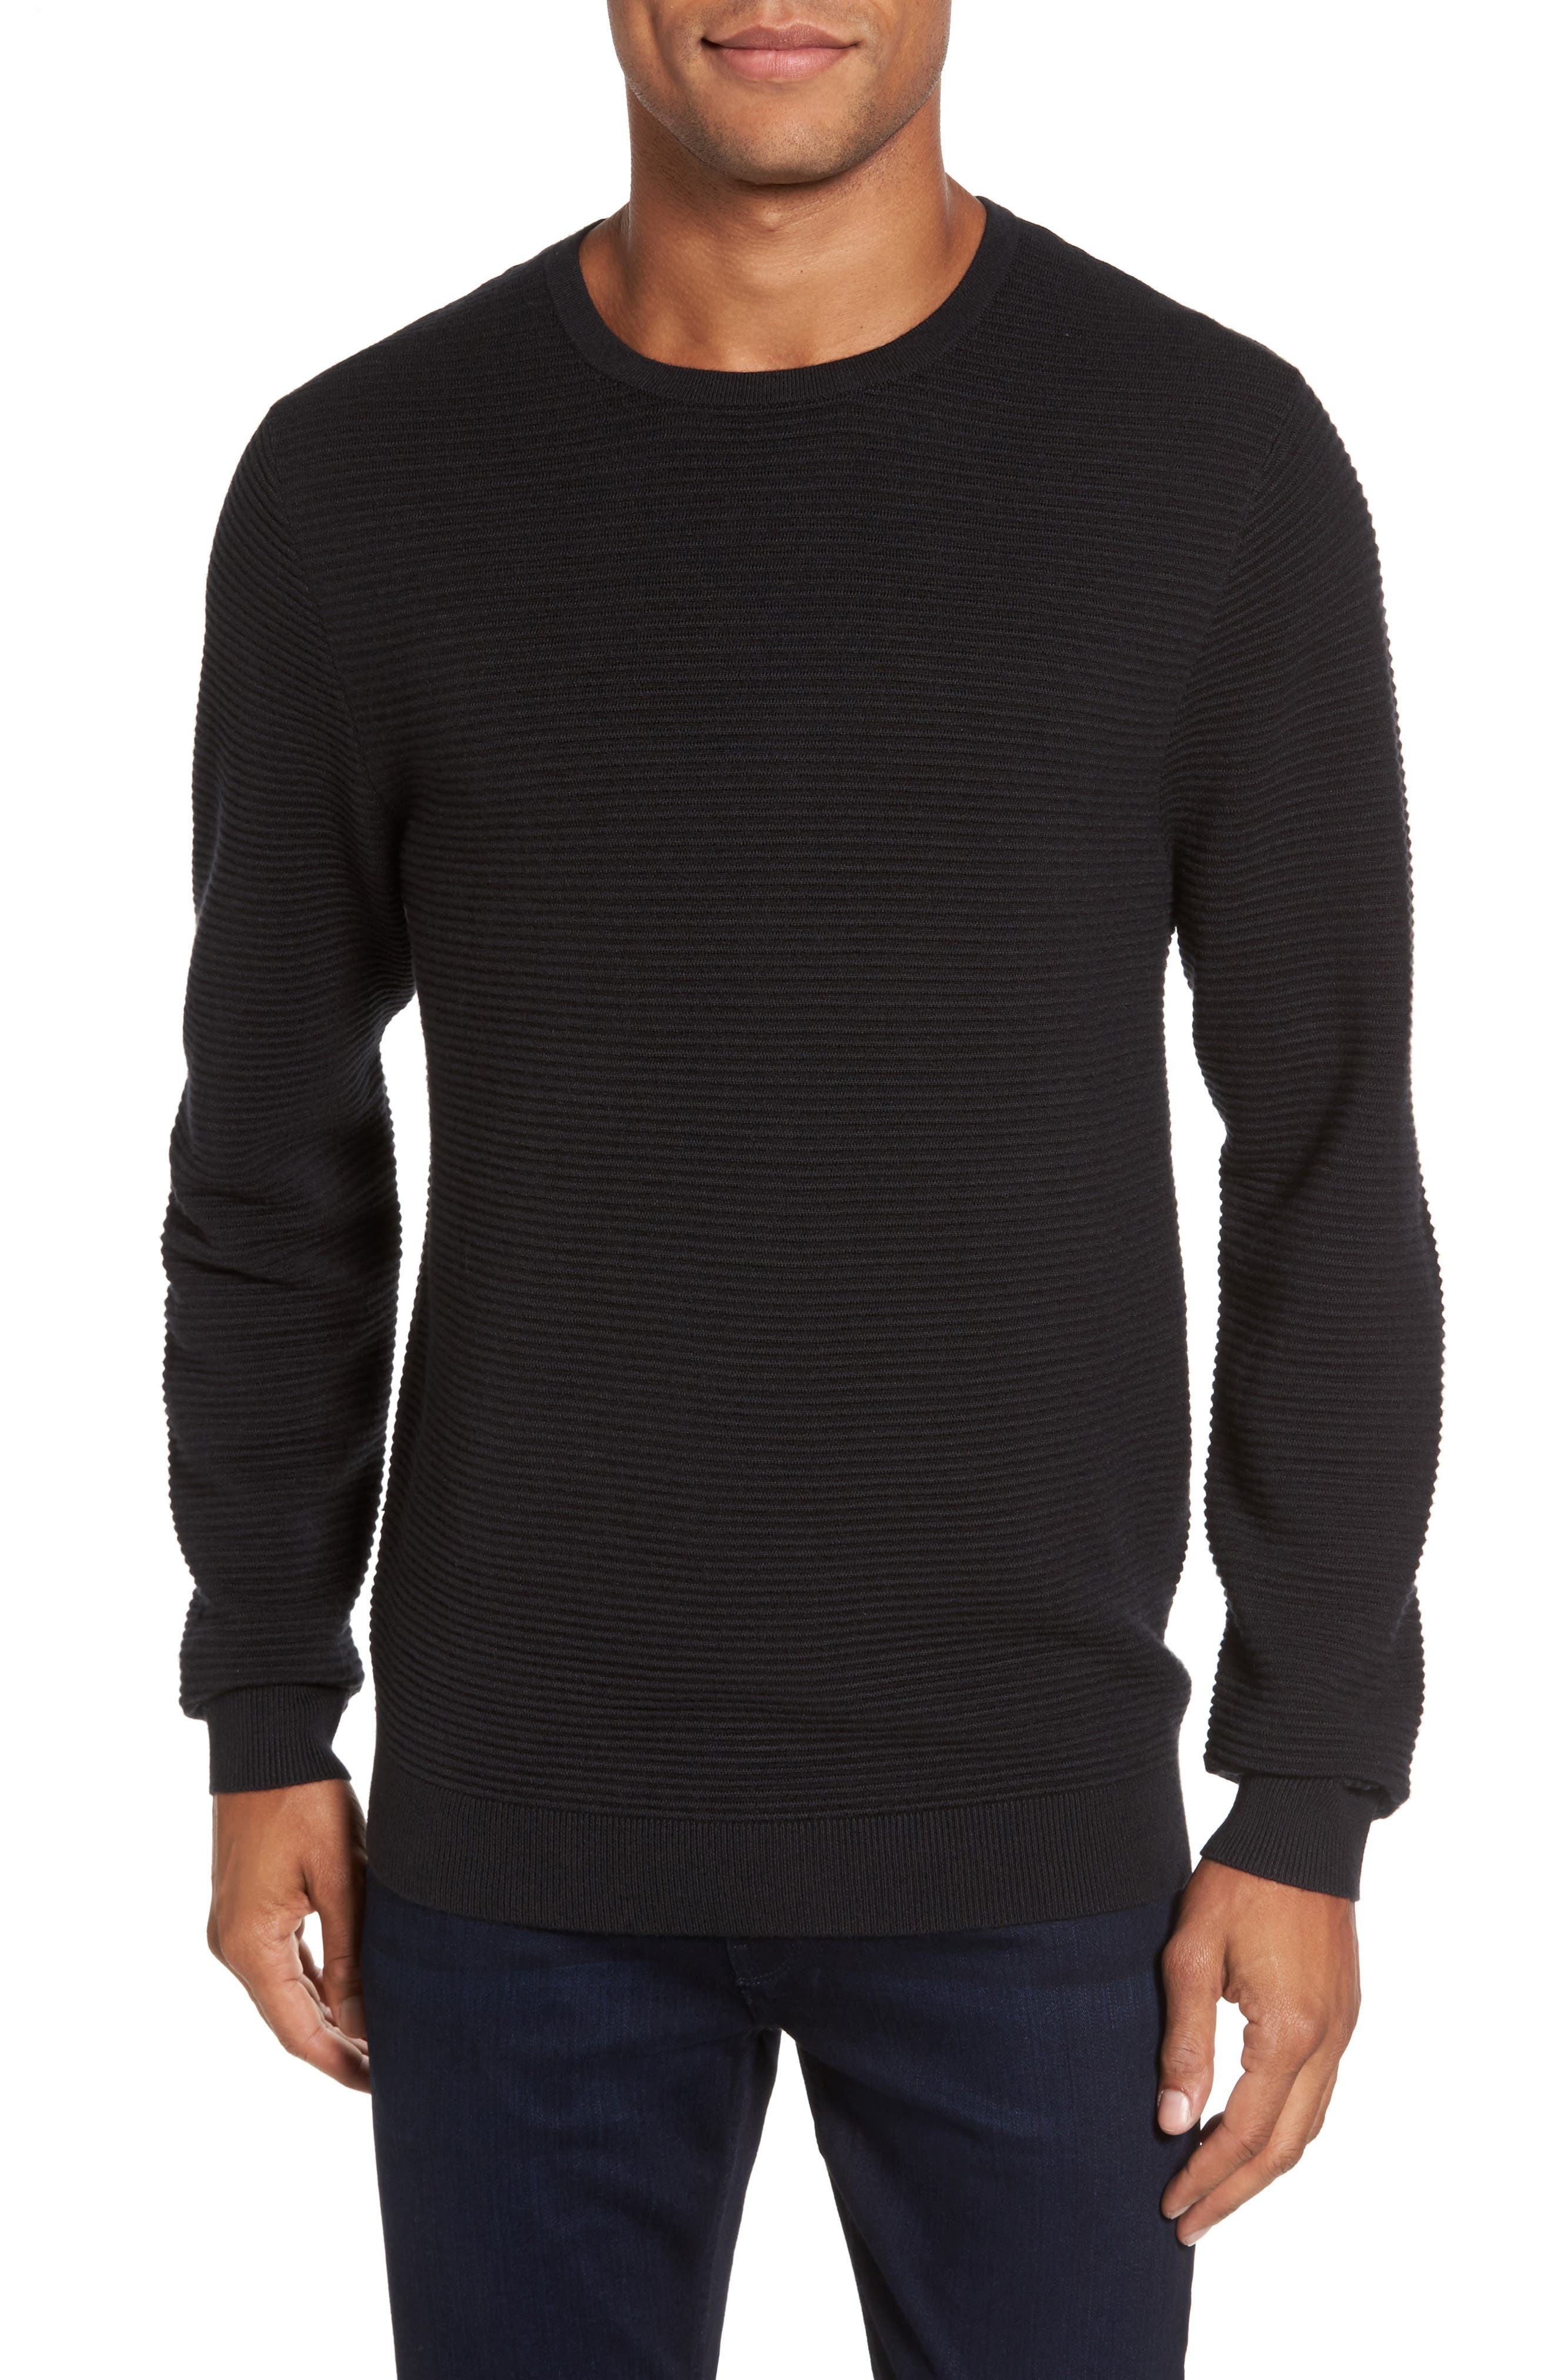 Ottoman Ribbed Crewneck Sweater,                             Main thumbnail 1, color,